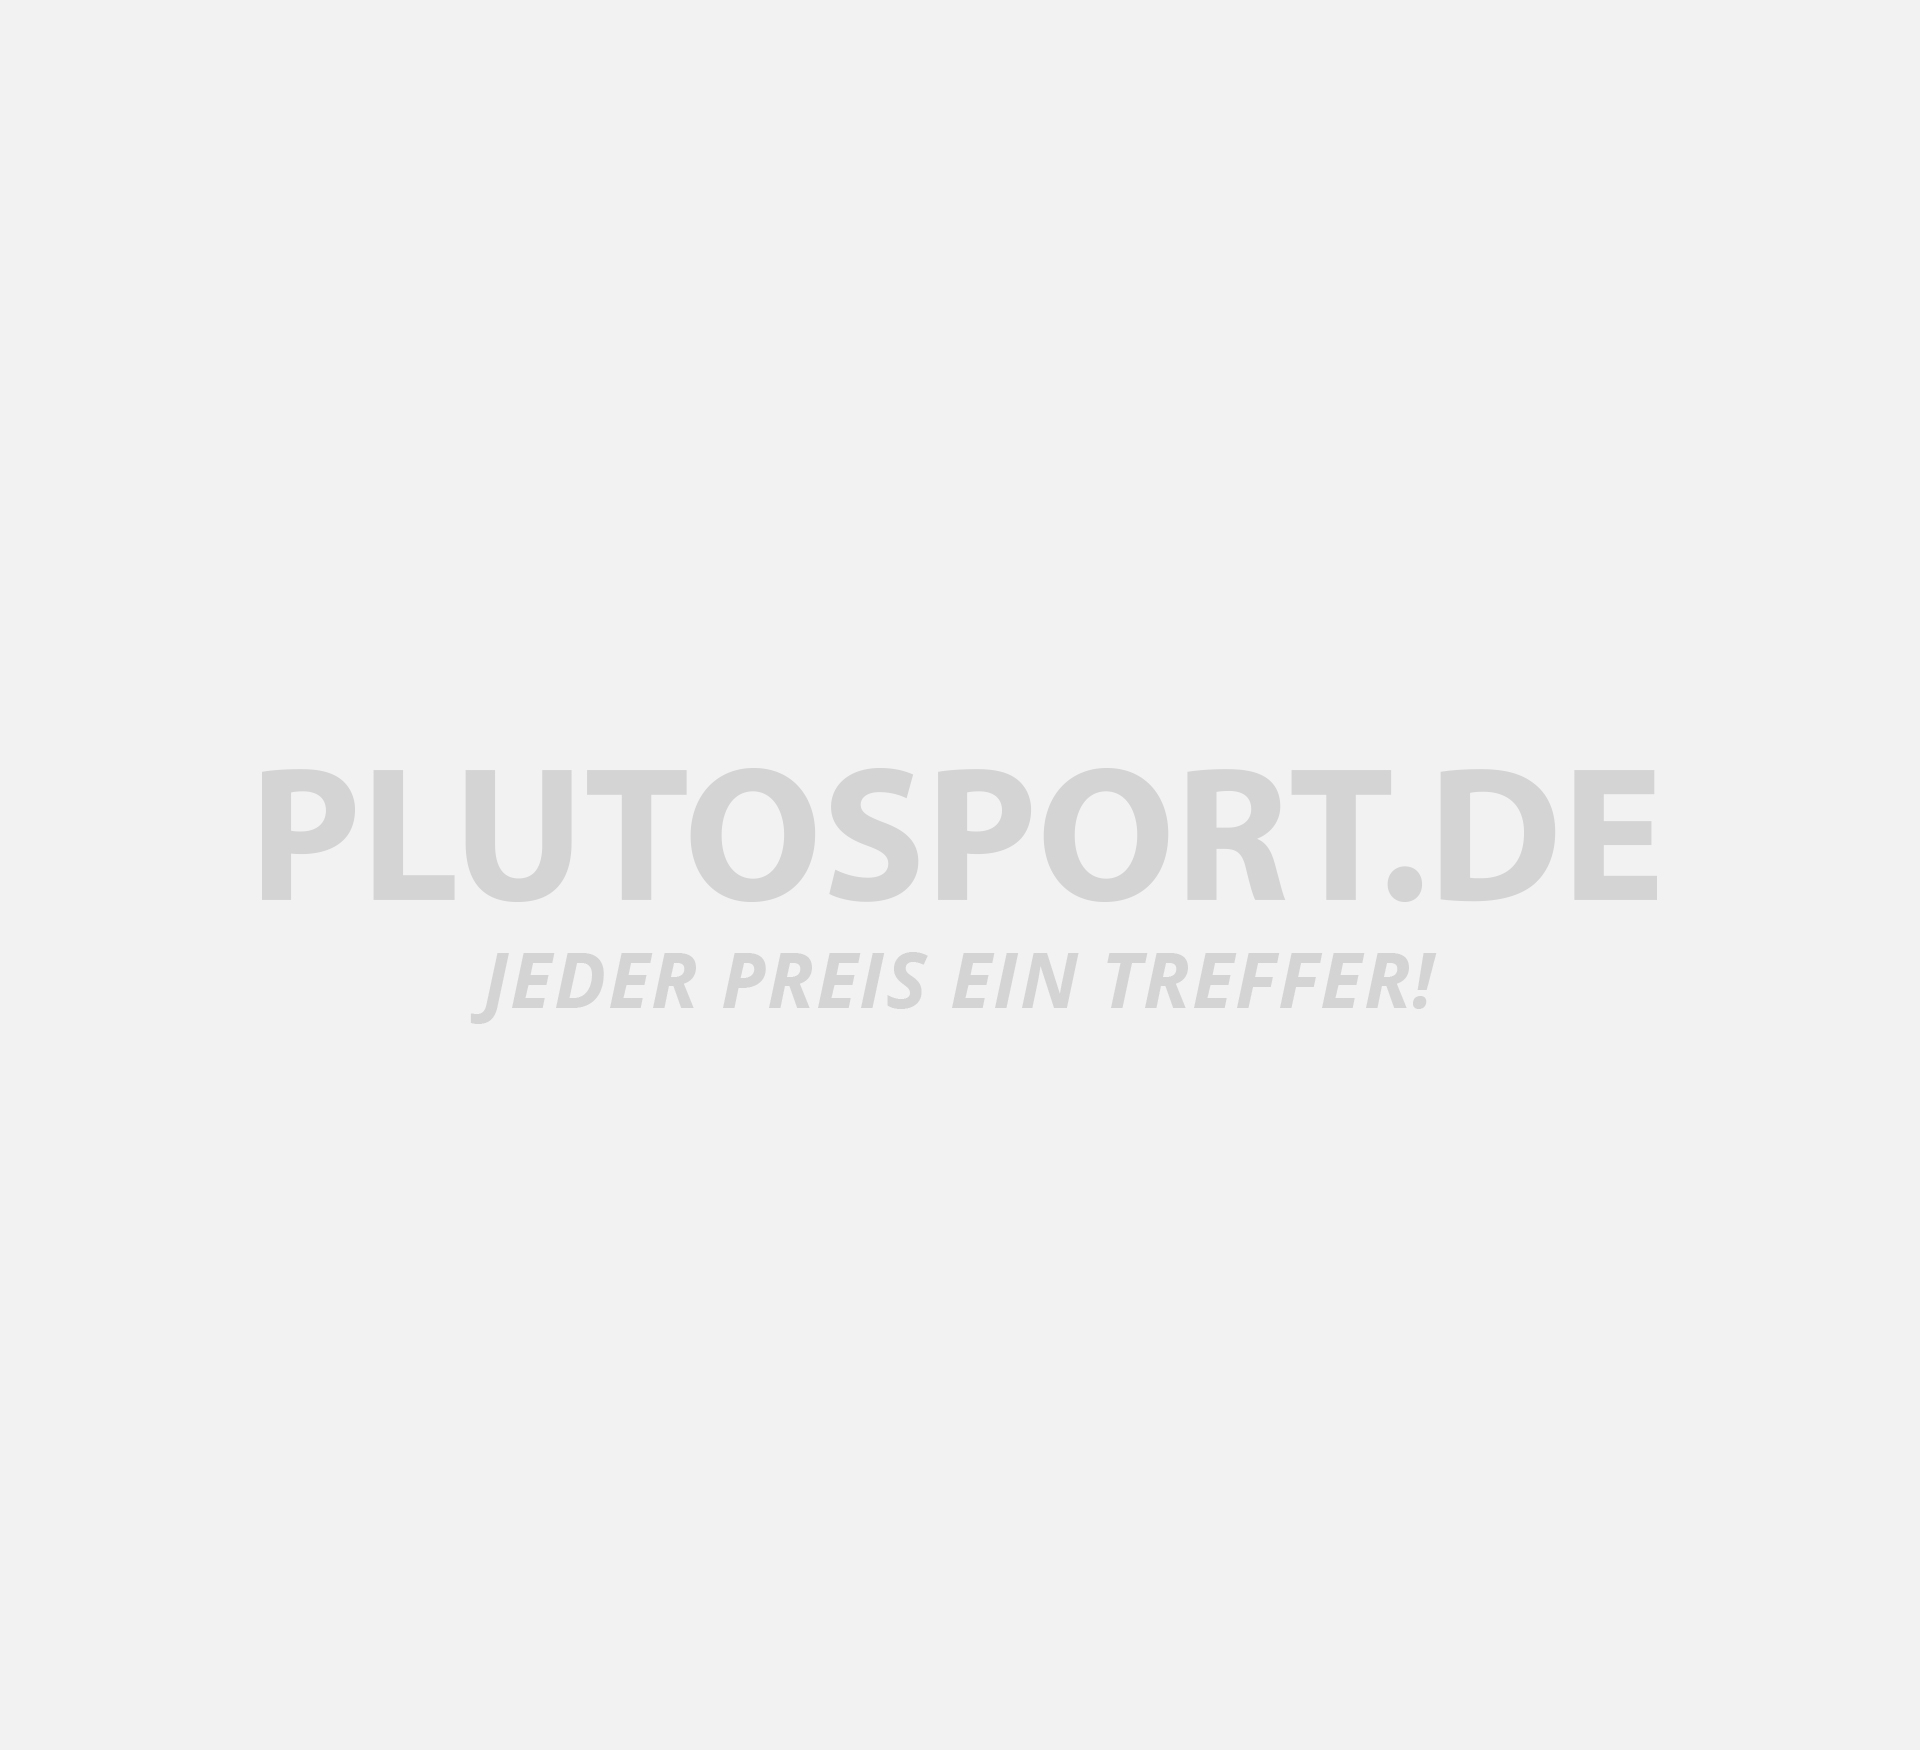 Adidas Media Arm Pocket